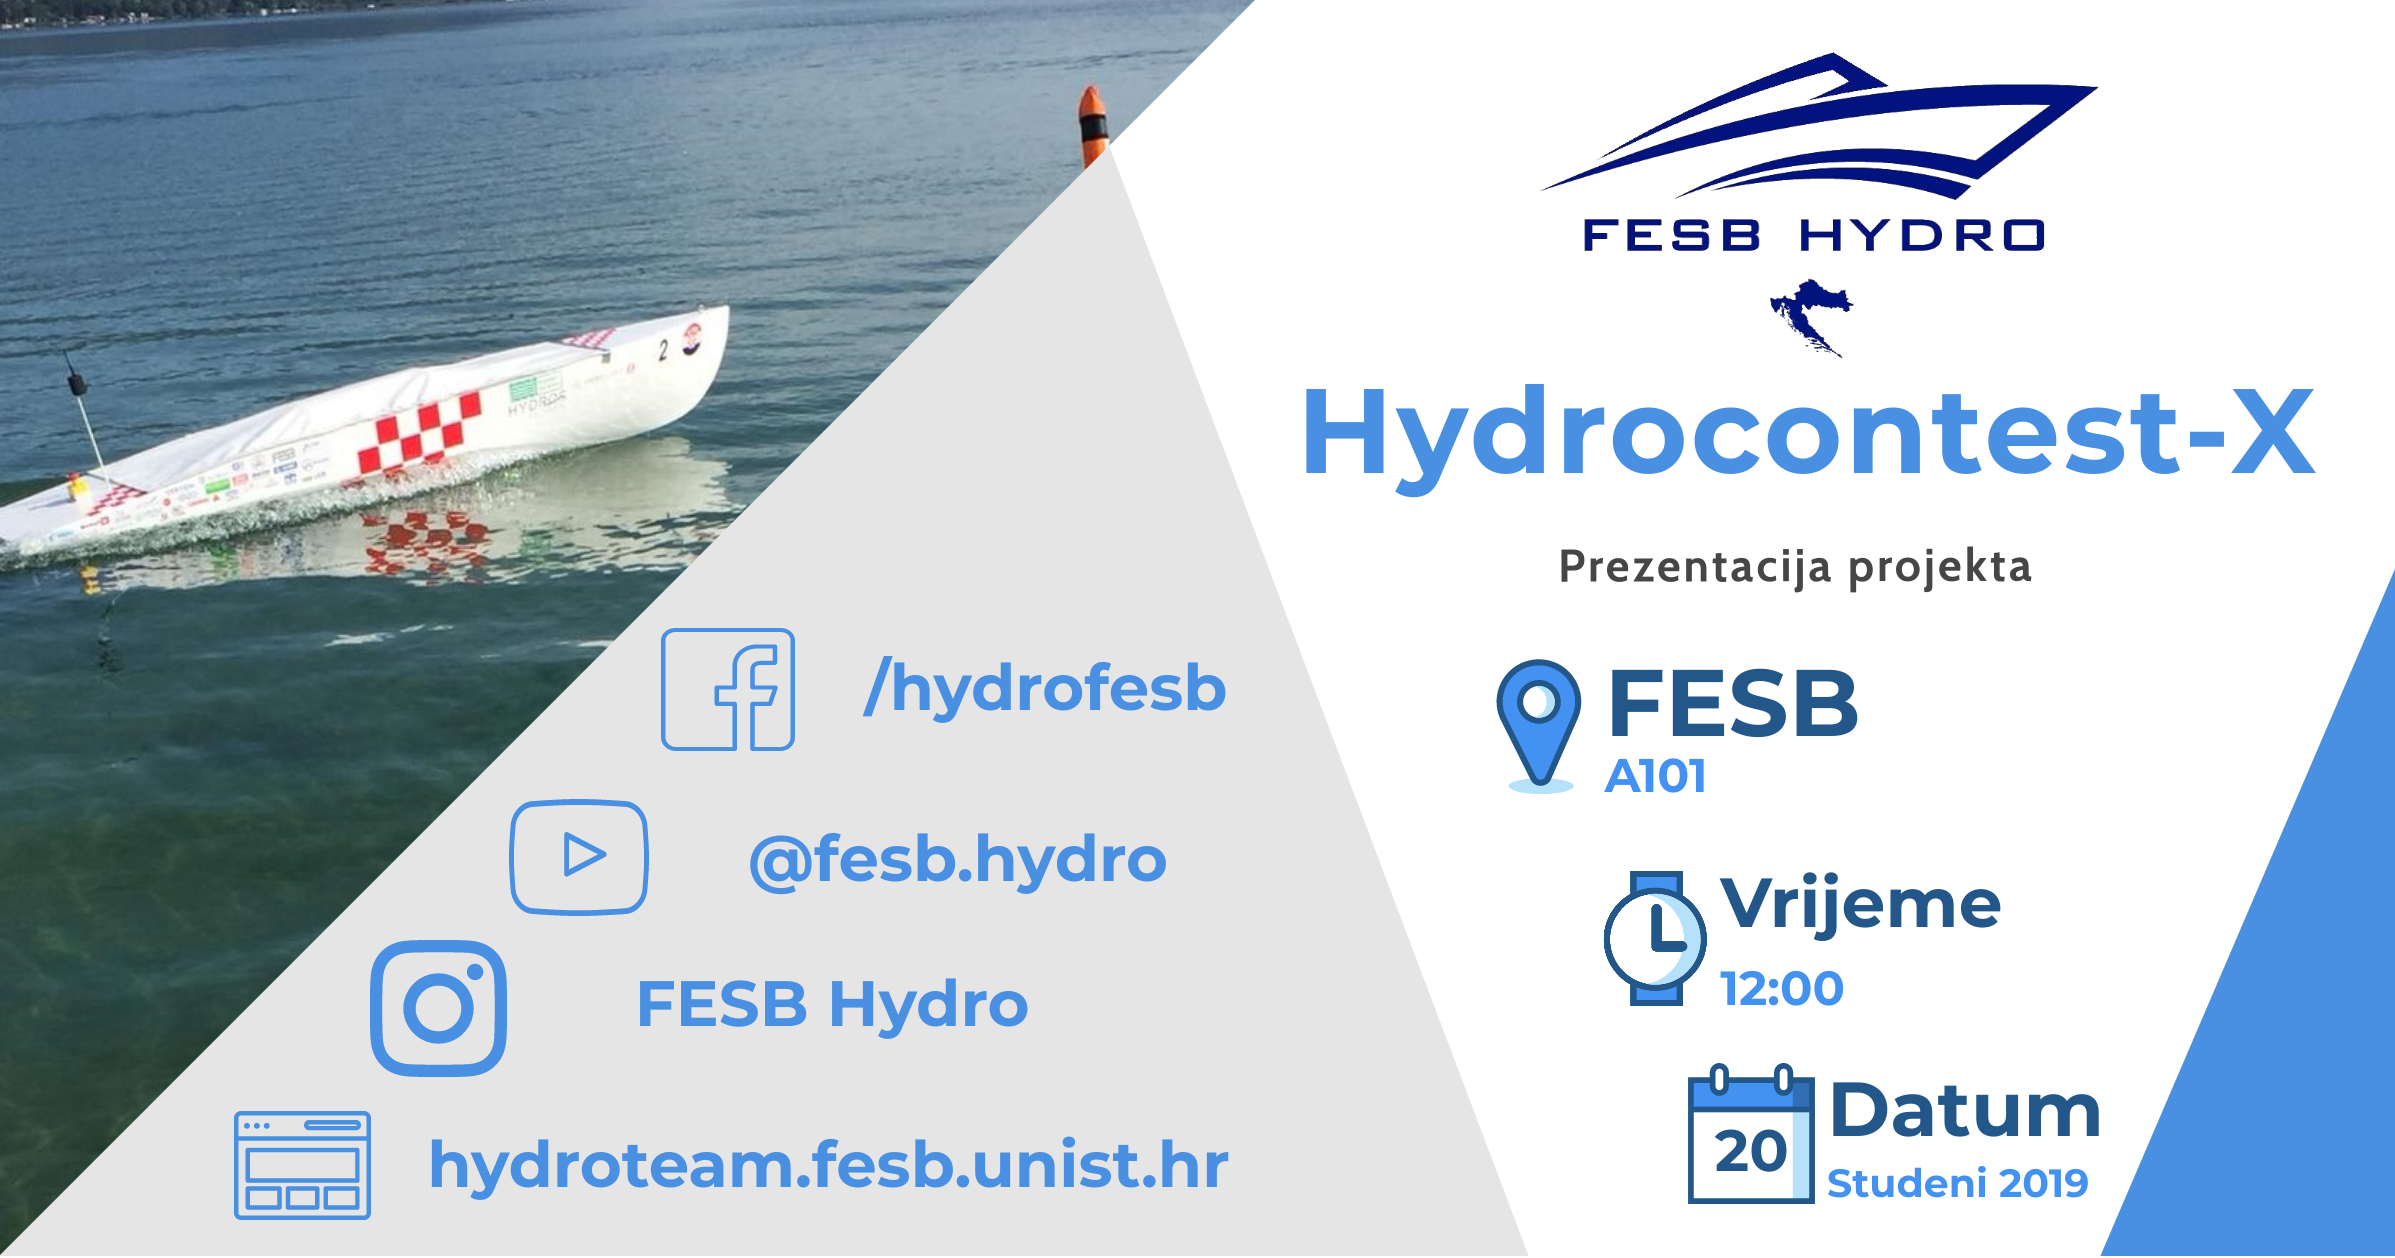 Presentation of the project Hydrocontest-X 2019